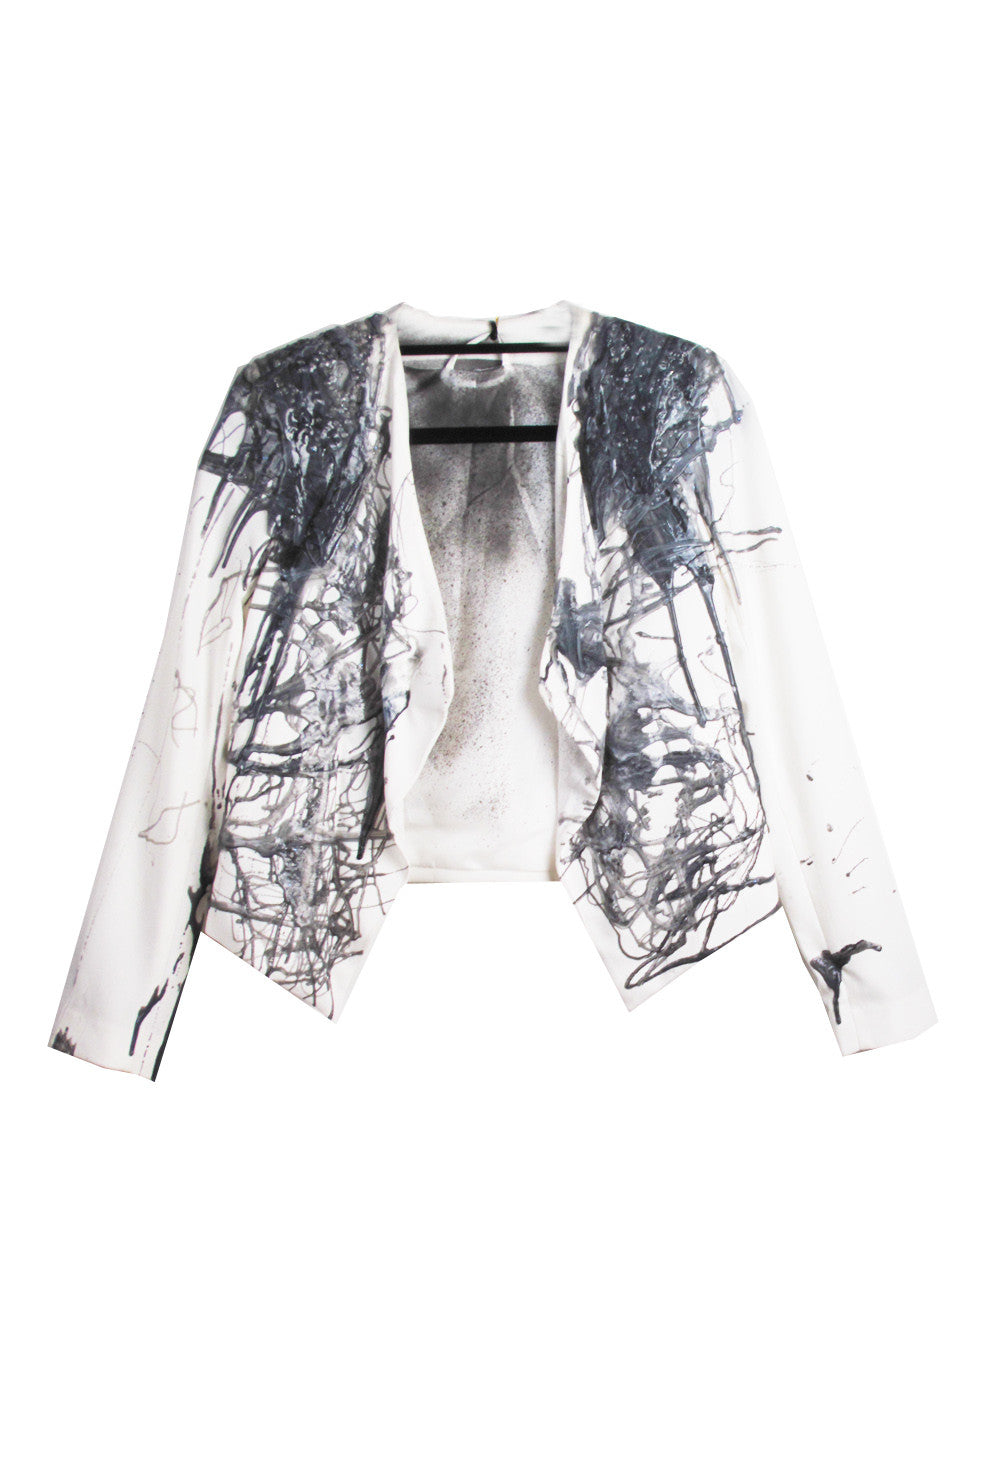 SSIK ONE OF A KIND Silicon Marble Drip Blazer - AVAILABLE FOR  IMMEDIATE DELIVERY SIZE S